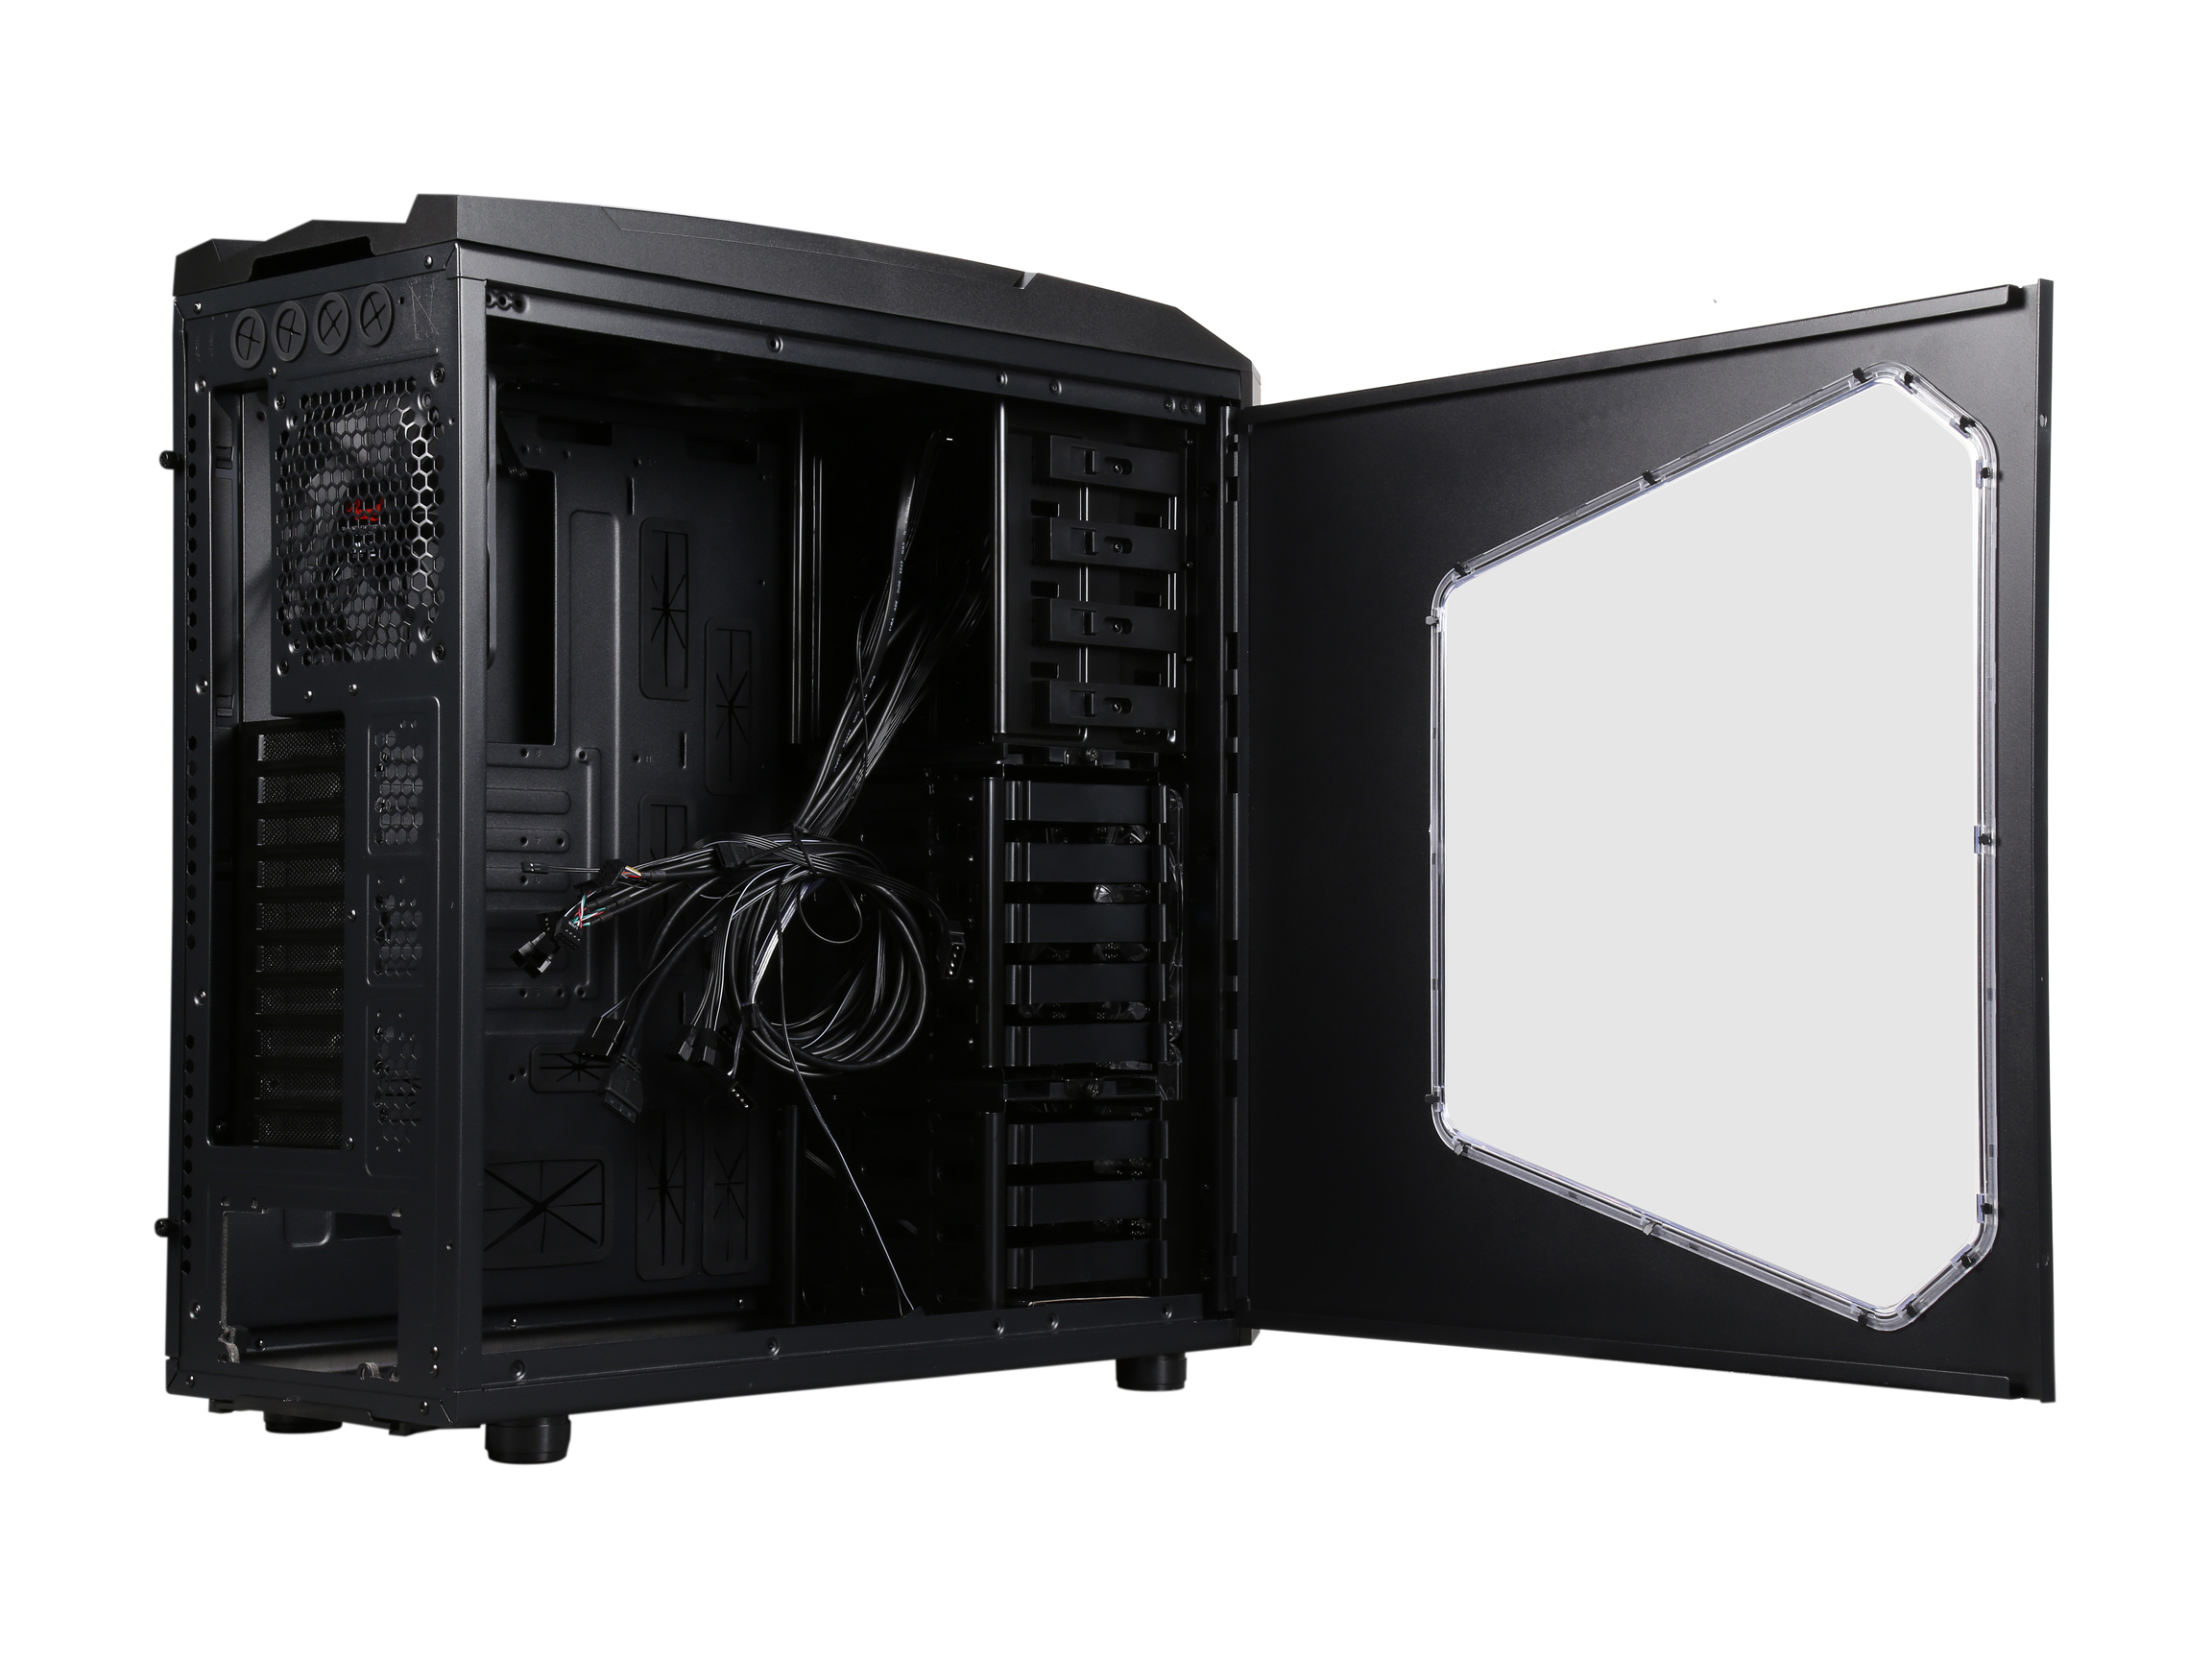 Rosewill Gaming Computer Case Atx Full Tower 5 Fans Pre